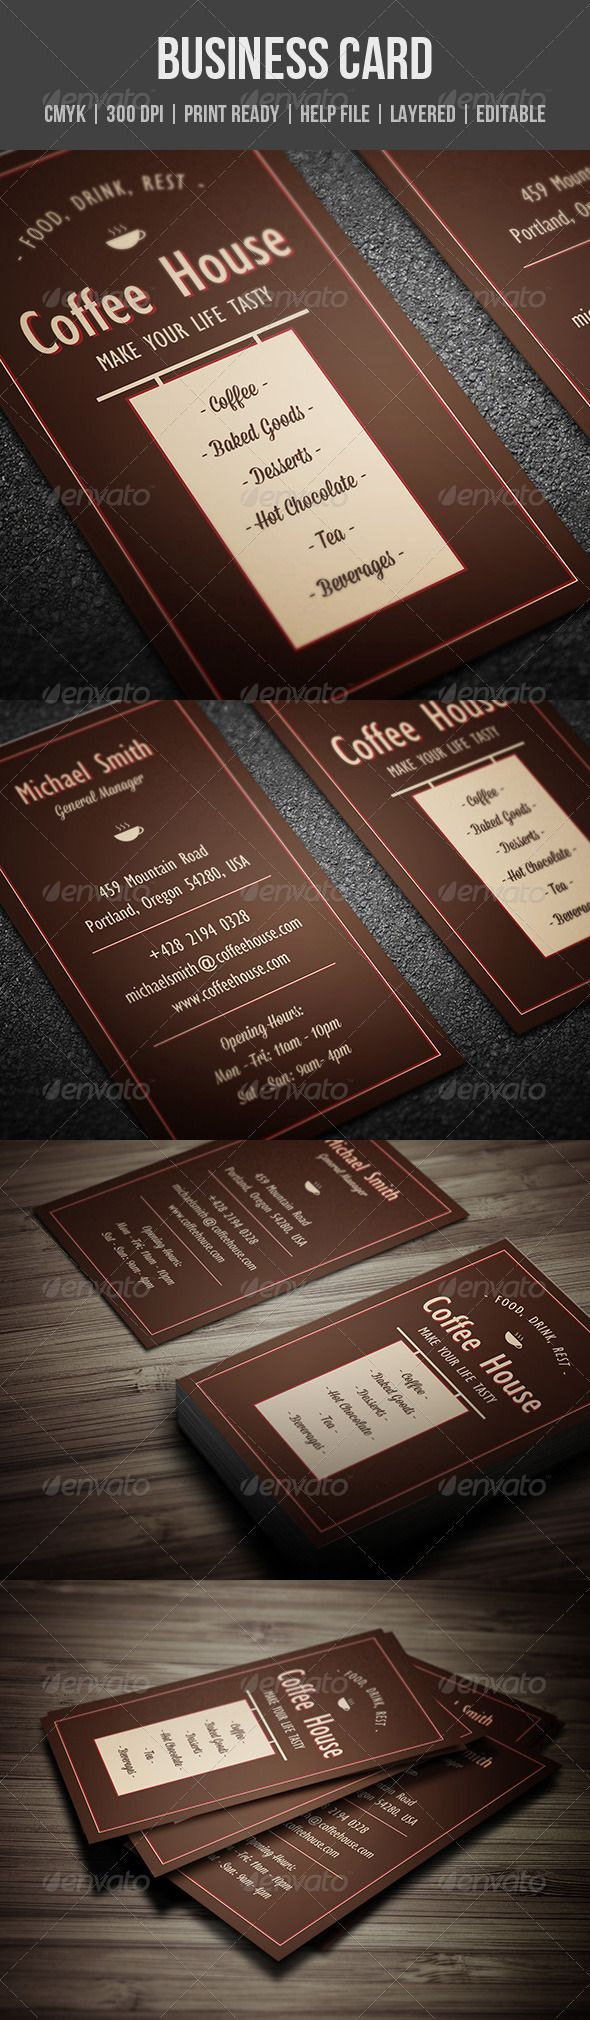 Coffee House Business Card  #GraphicRiver         Features:   CMYK colors  300 DPI  Layered PSD files  Customizable and Editable  2×3.5 (2.25×3.75 with bleeds + Trim Mark)  Print Ready Format  Vertical Business Card  Easy to change color   Included:   2 PSD files (front and back)  1 PDF Help file   Fonts:   Gill Sans MT Condensed (system font)  Mission Script here  If you have any question please contact me via my profile.     Created: 24August13 Graphics